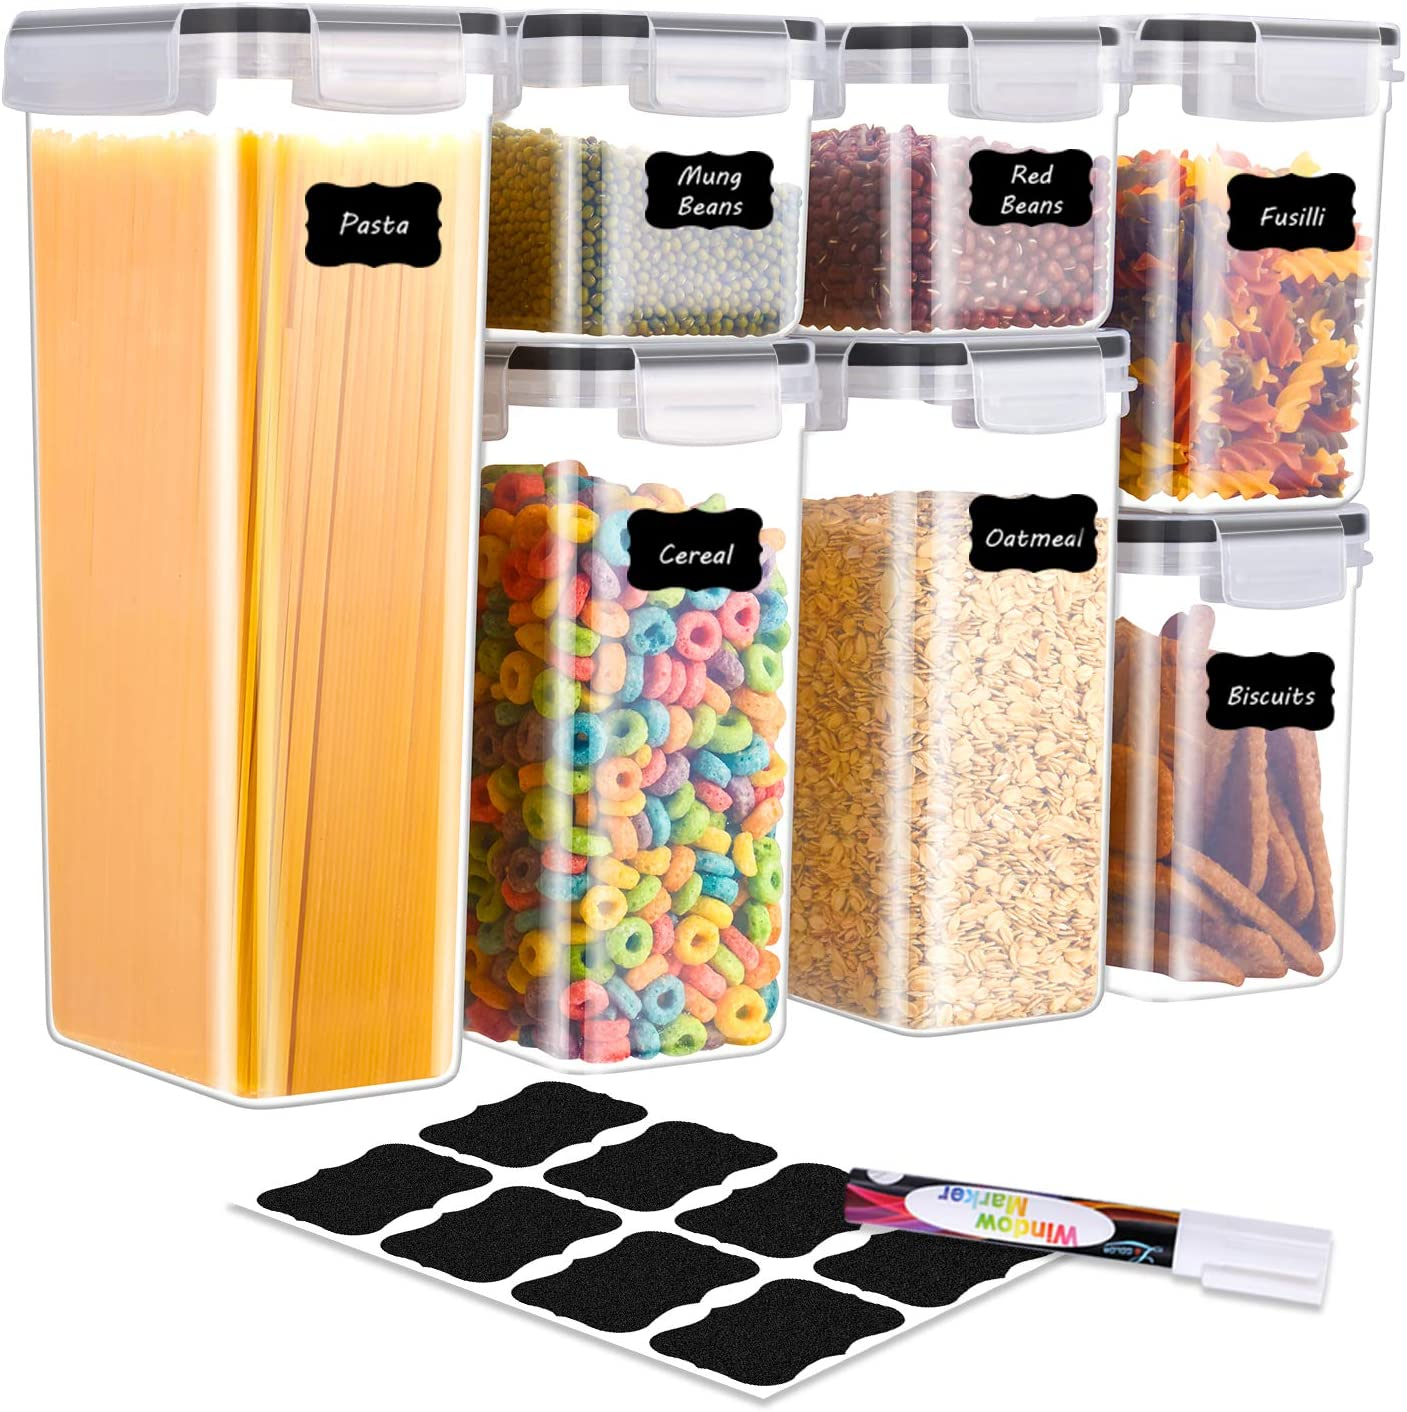 BINLAN Food Storage Containers - [7 Piece] Airtight Food Storage Containers - Large Kitchen Pantry Storage Container Set - Dispenser Keepers with 20 Labels & Pen - Black